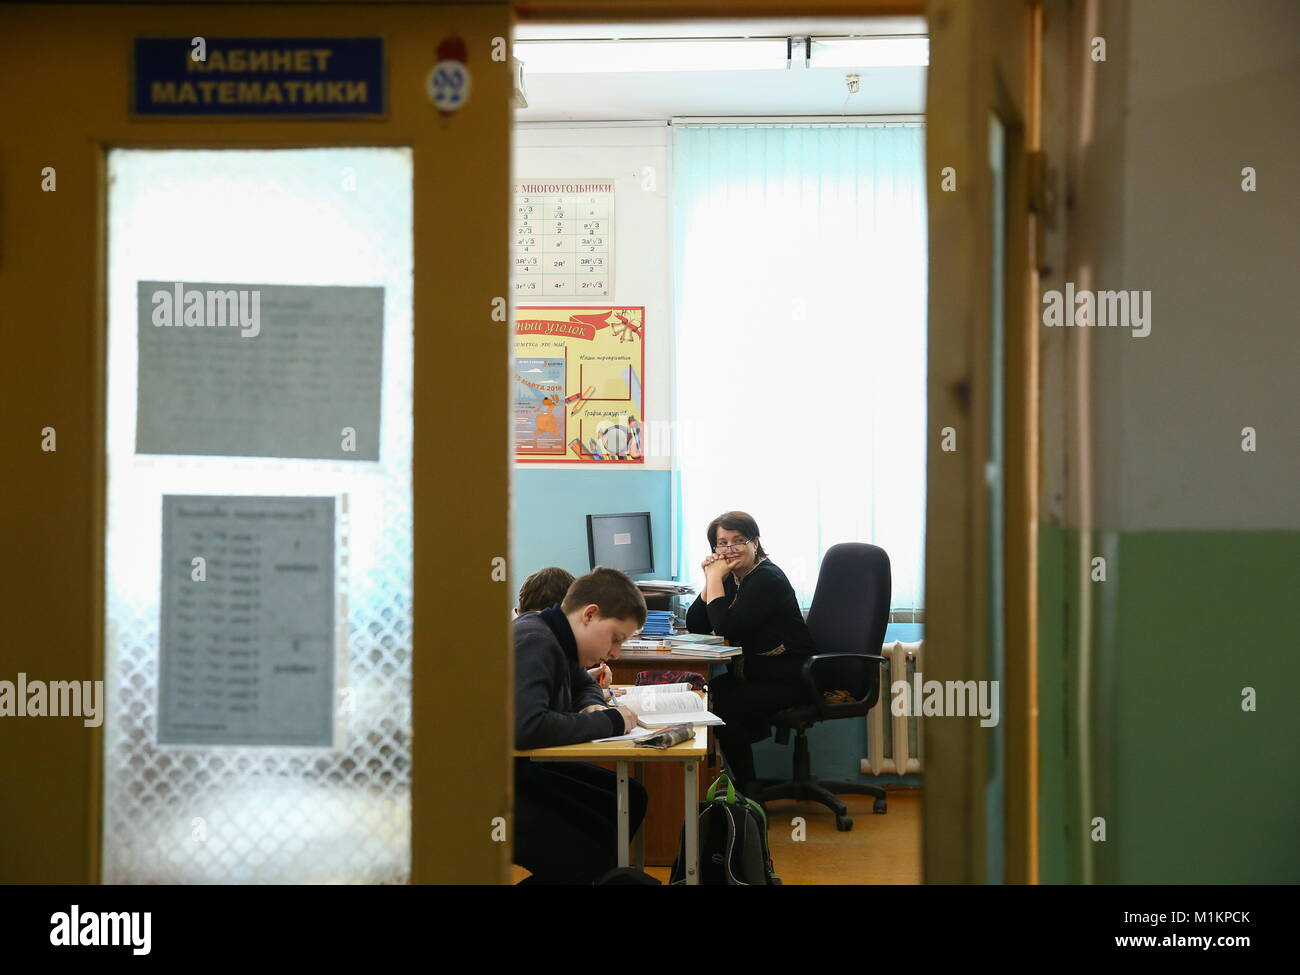 MAKHACHKALA, RUSSIA - JANUARY 30, 2018: A teacher and students during a maths lesson at the Centre for Gifted Children, - Stock Image